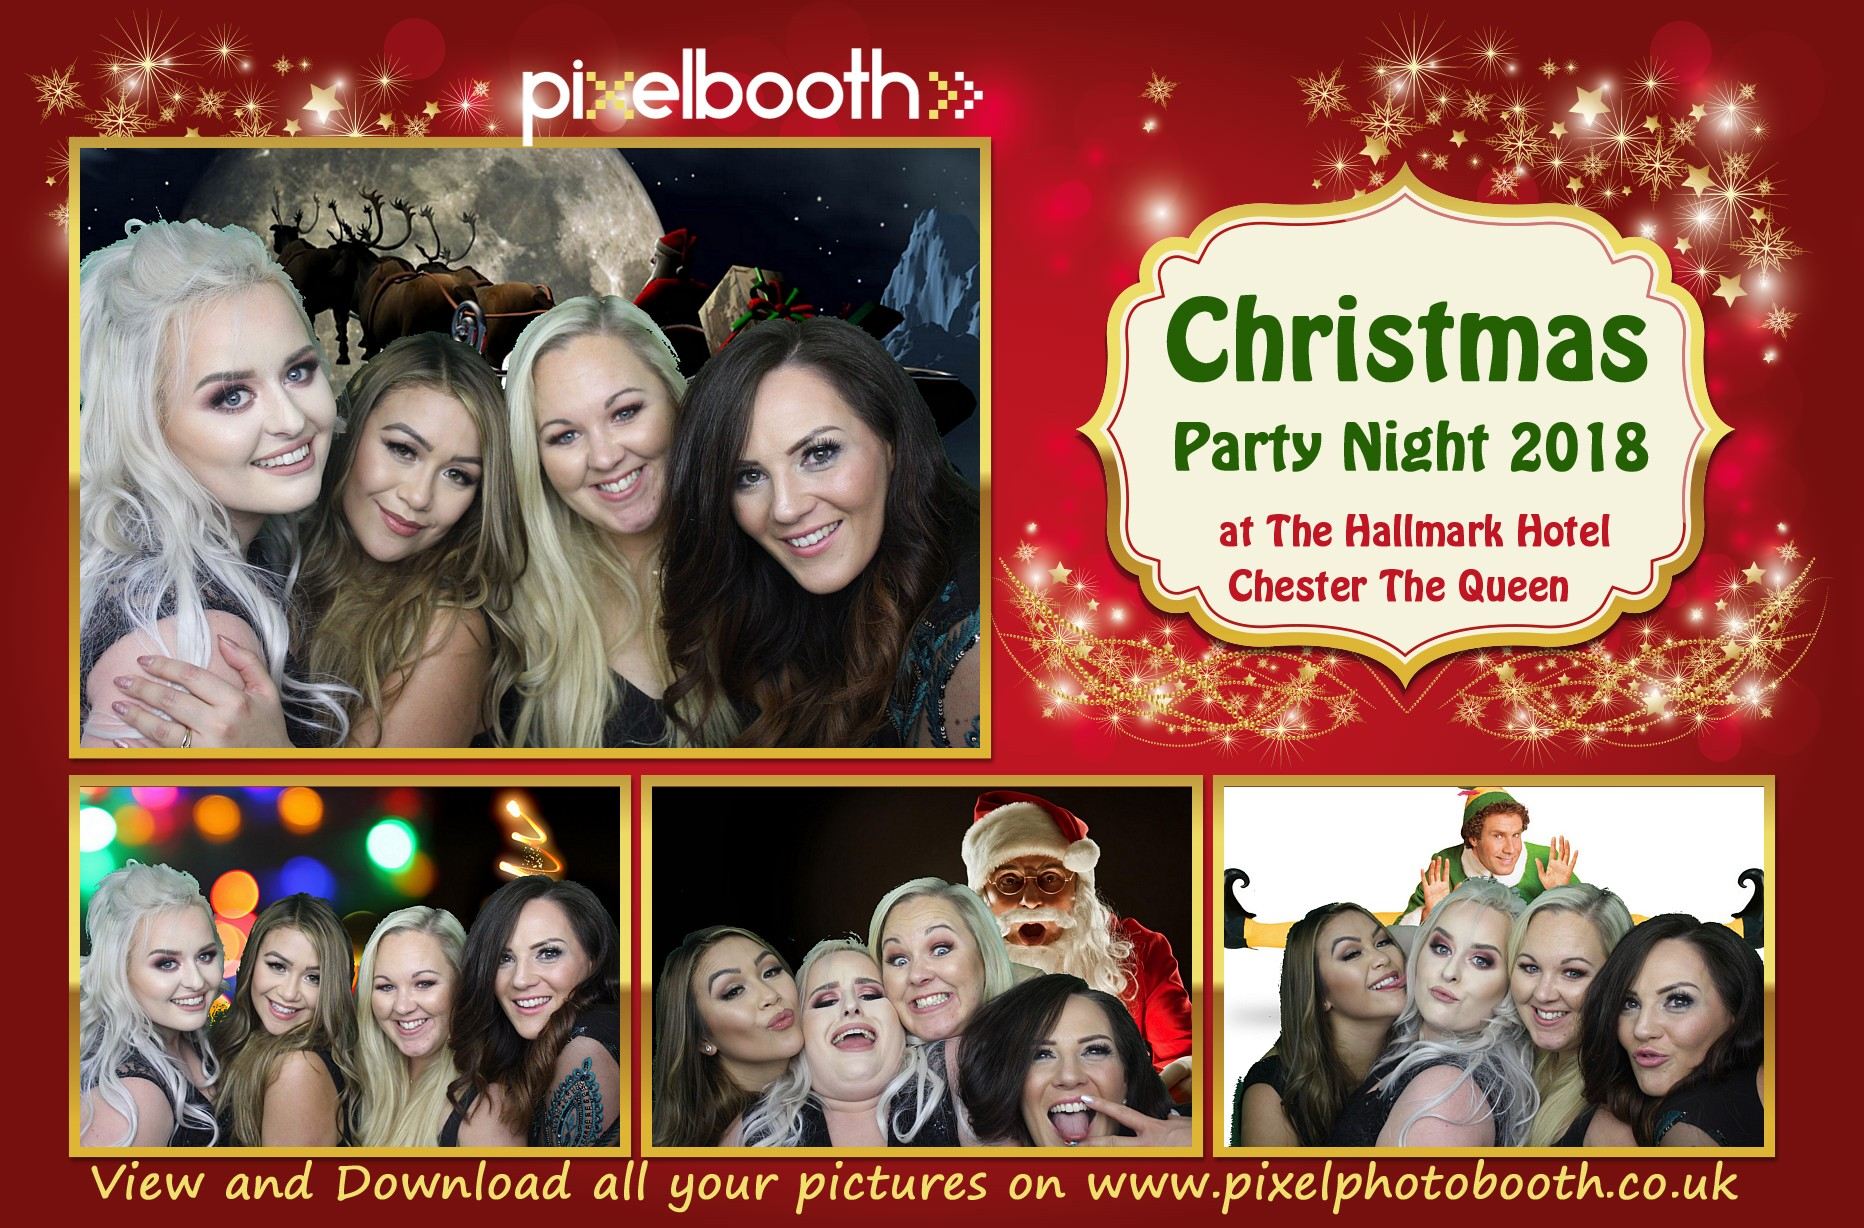 22nd Dec 2018: Queen Hotel Christmas Party Night